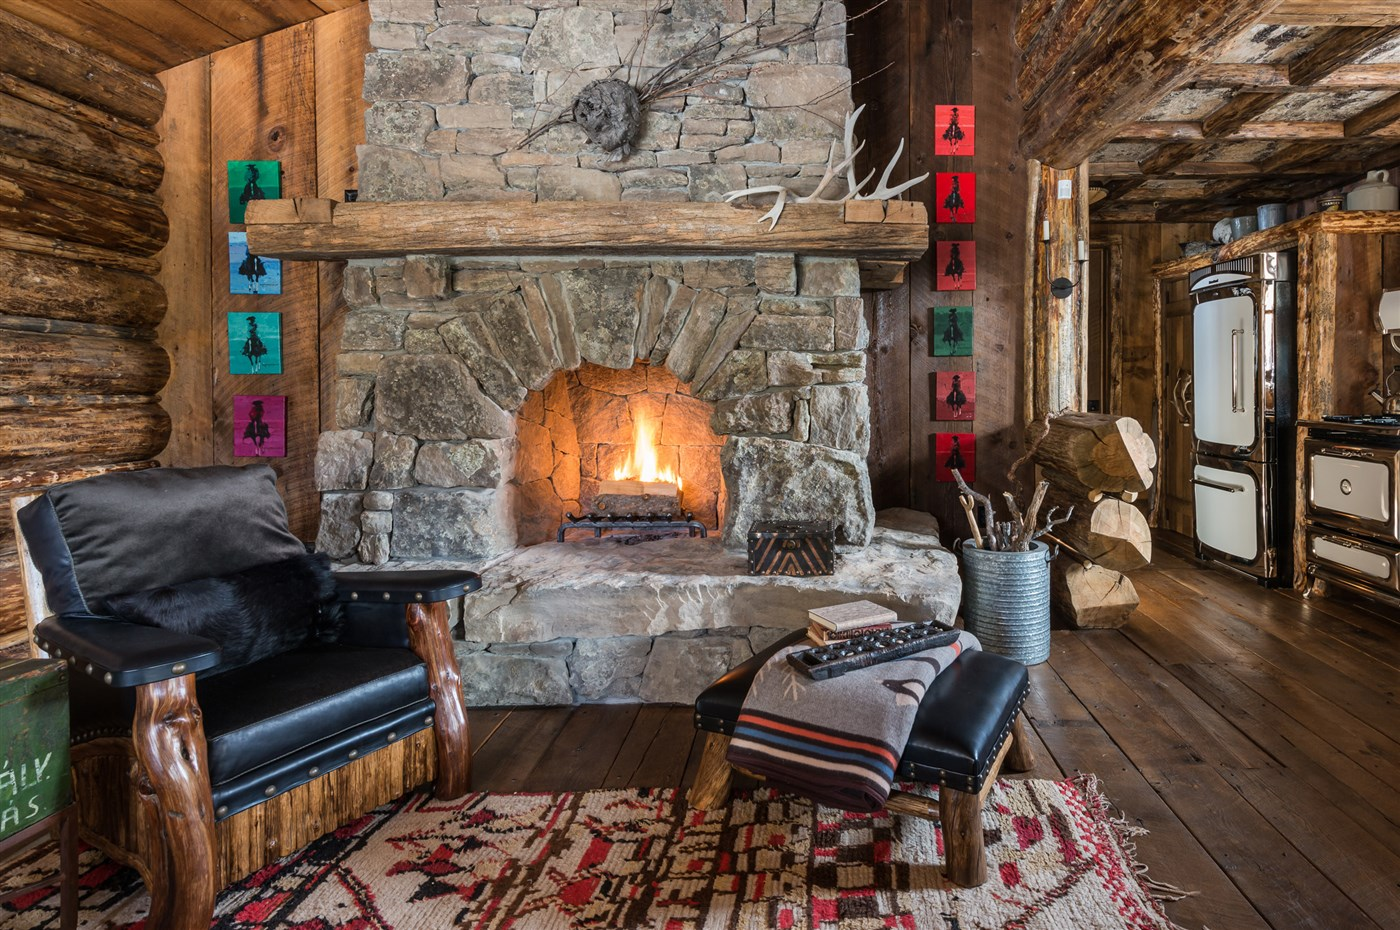 Trophies on the walls and the rustic cabin feel make it pleasant even for hunters and lumberjacks.